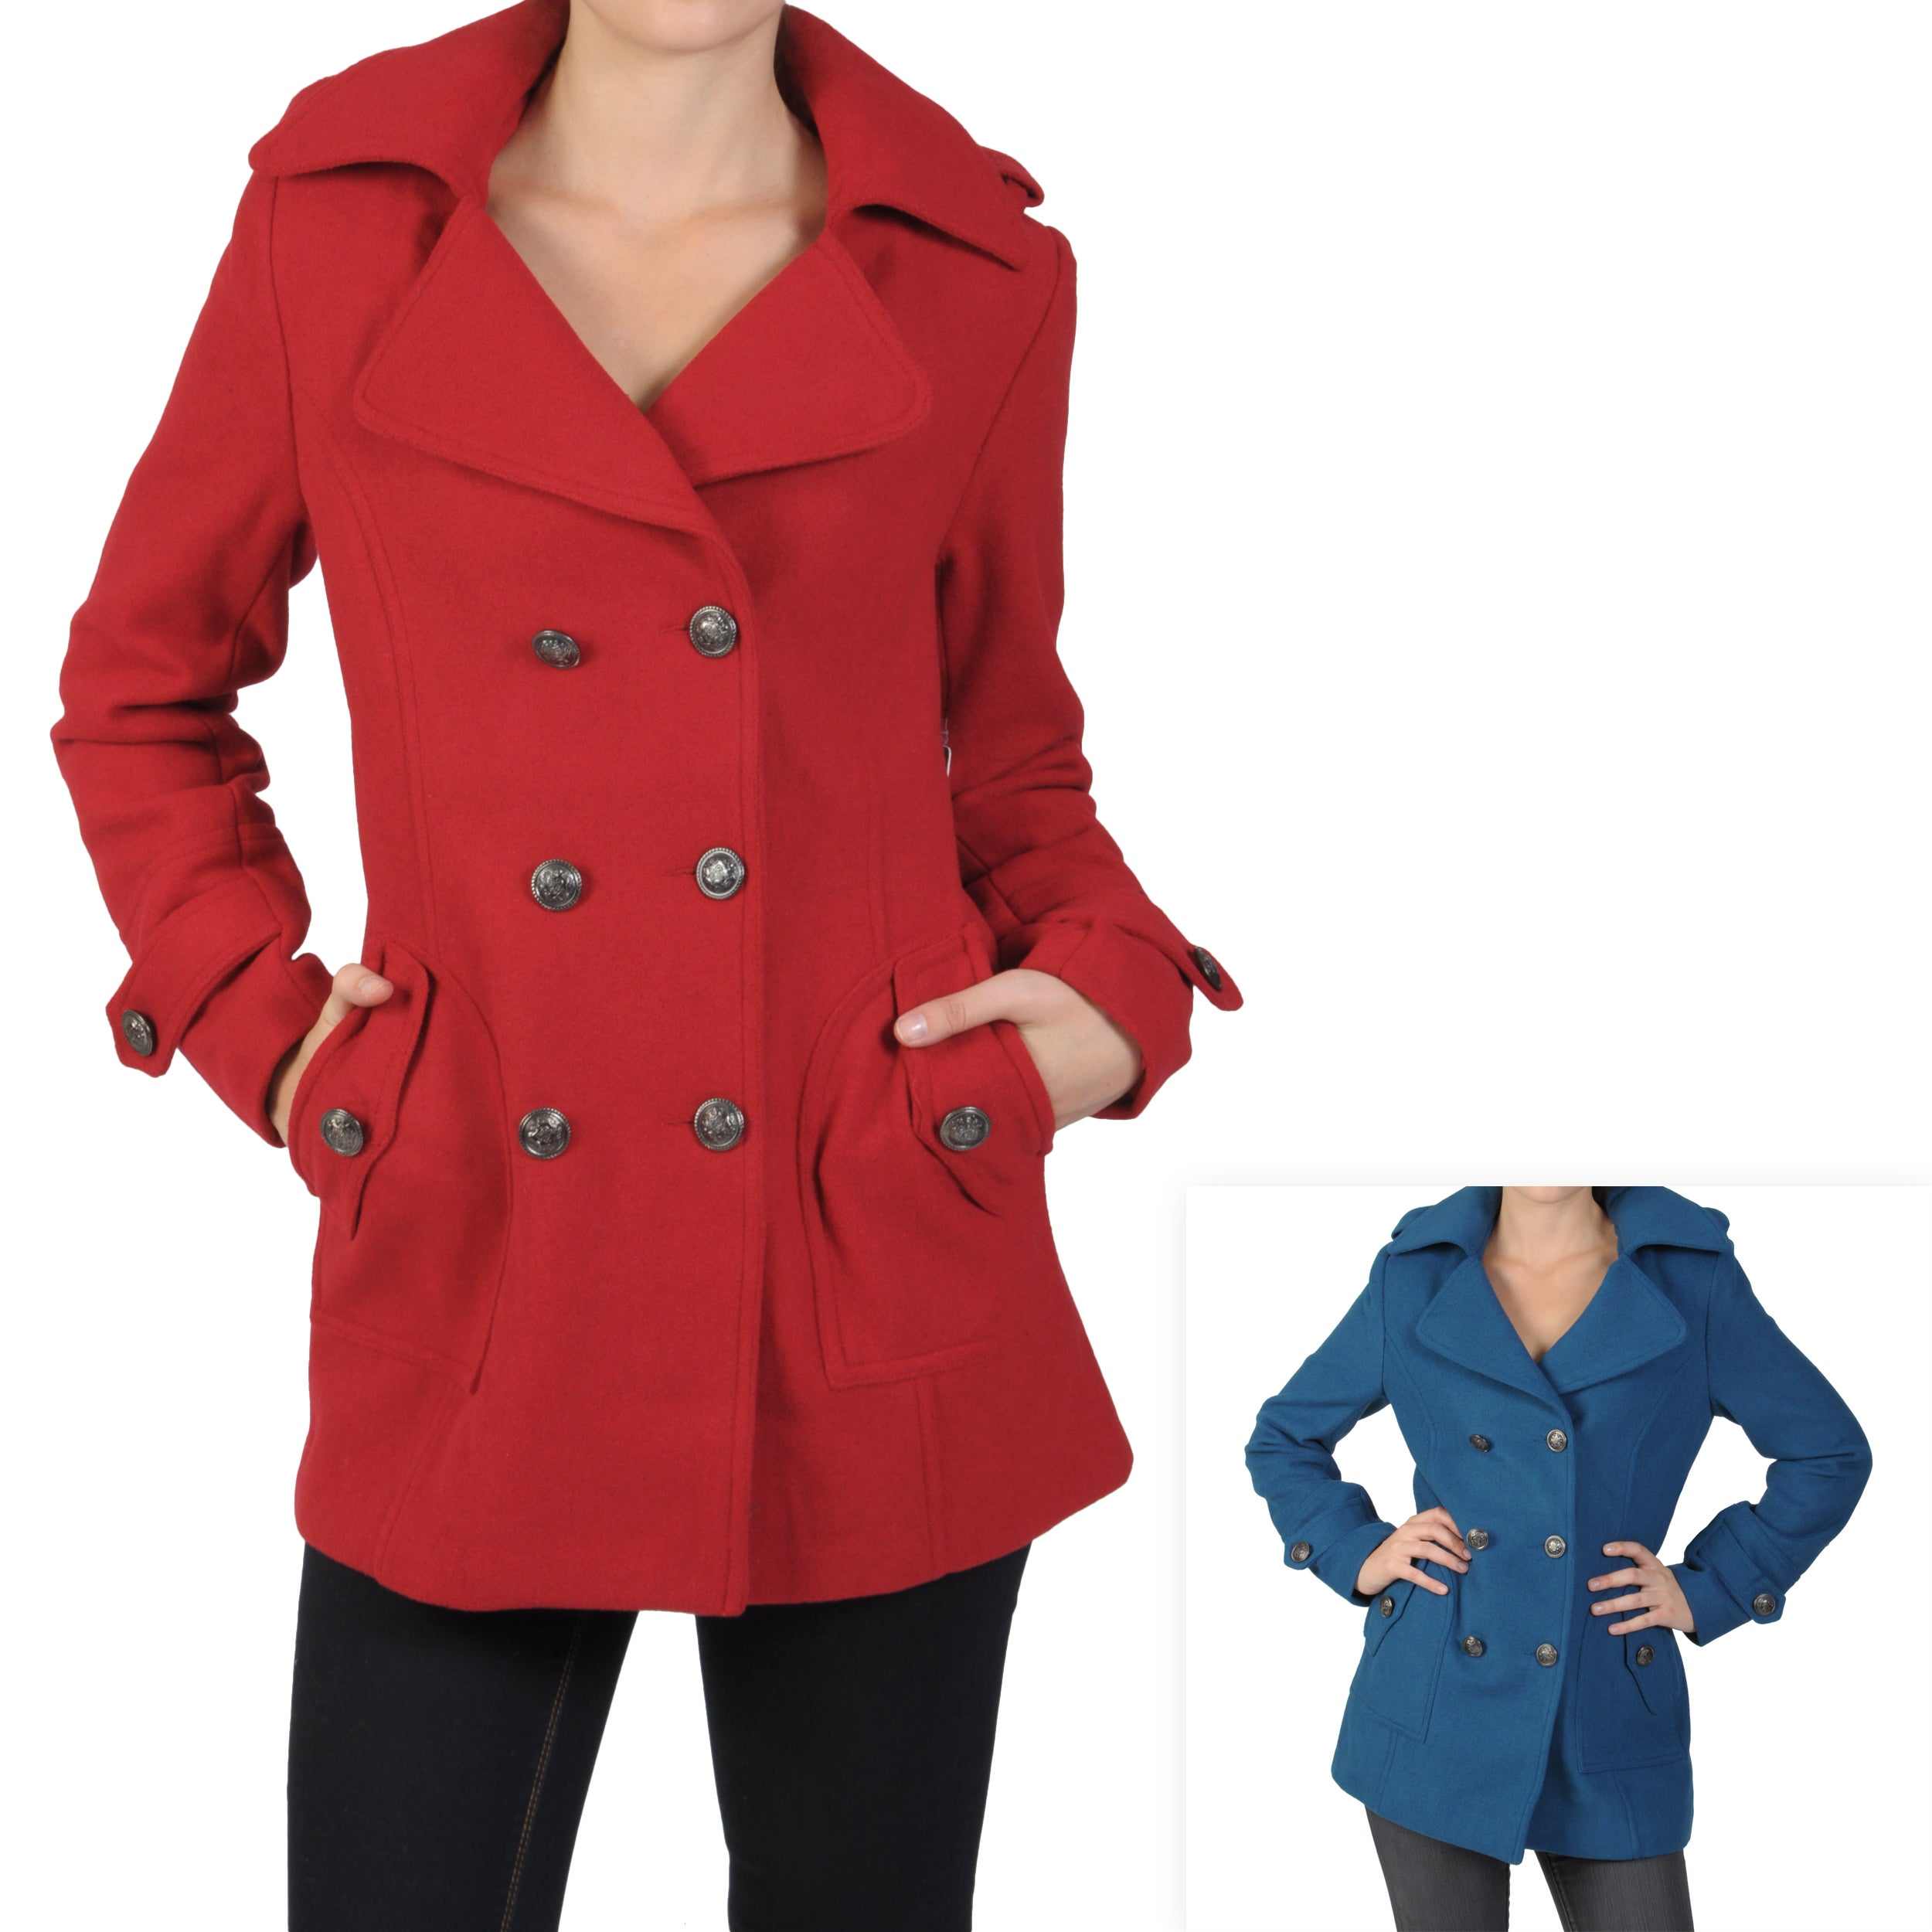 Journee Collection Junior's Double-breasted Peacoat